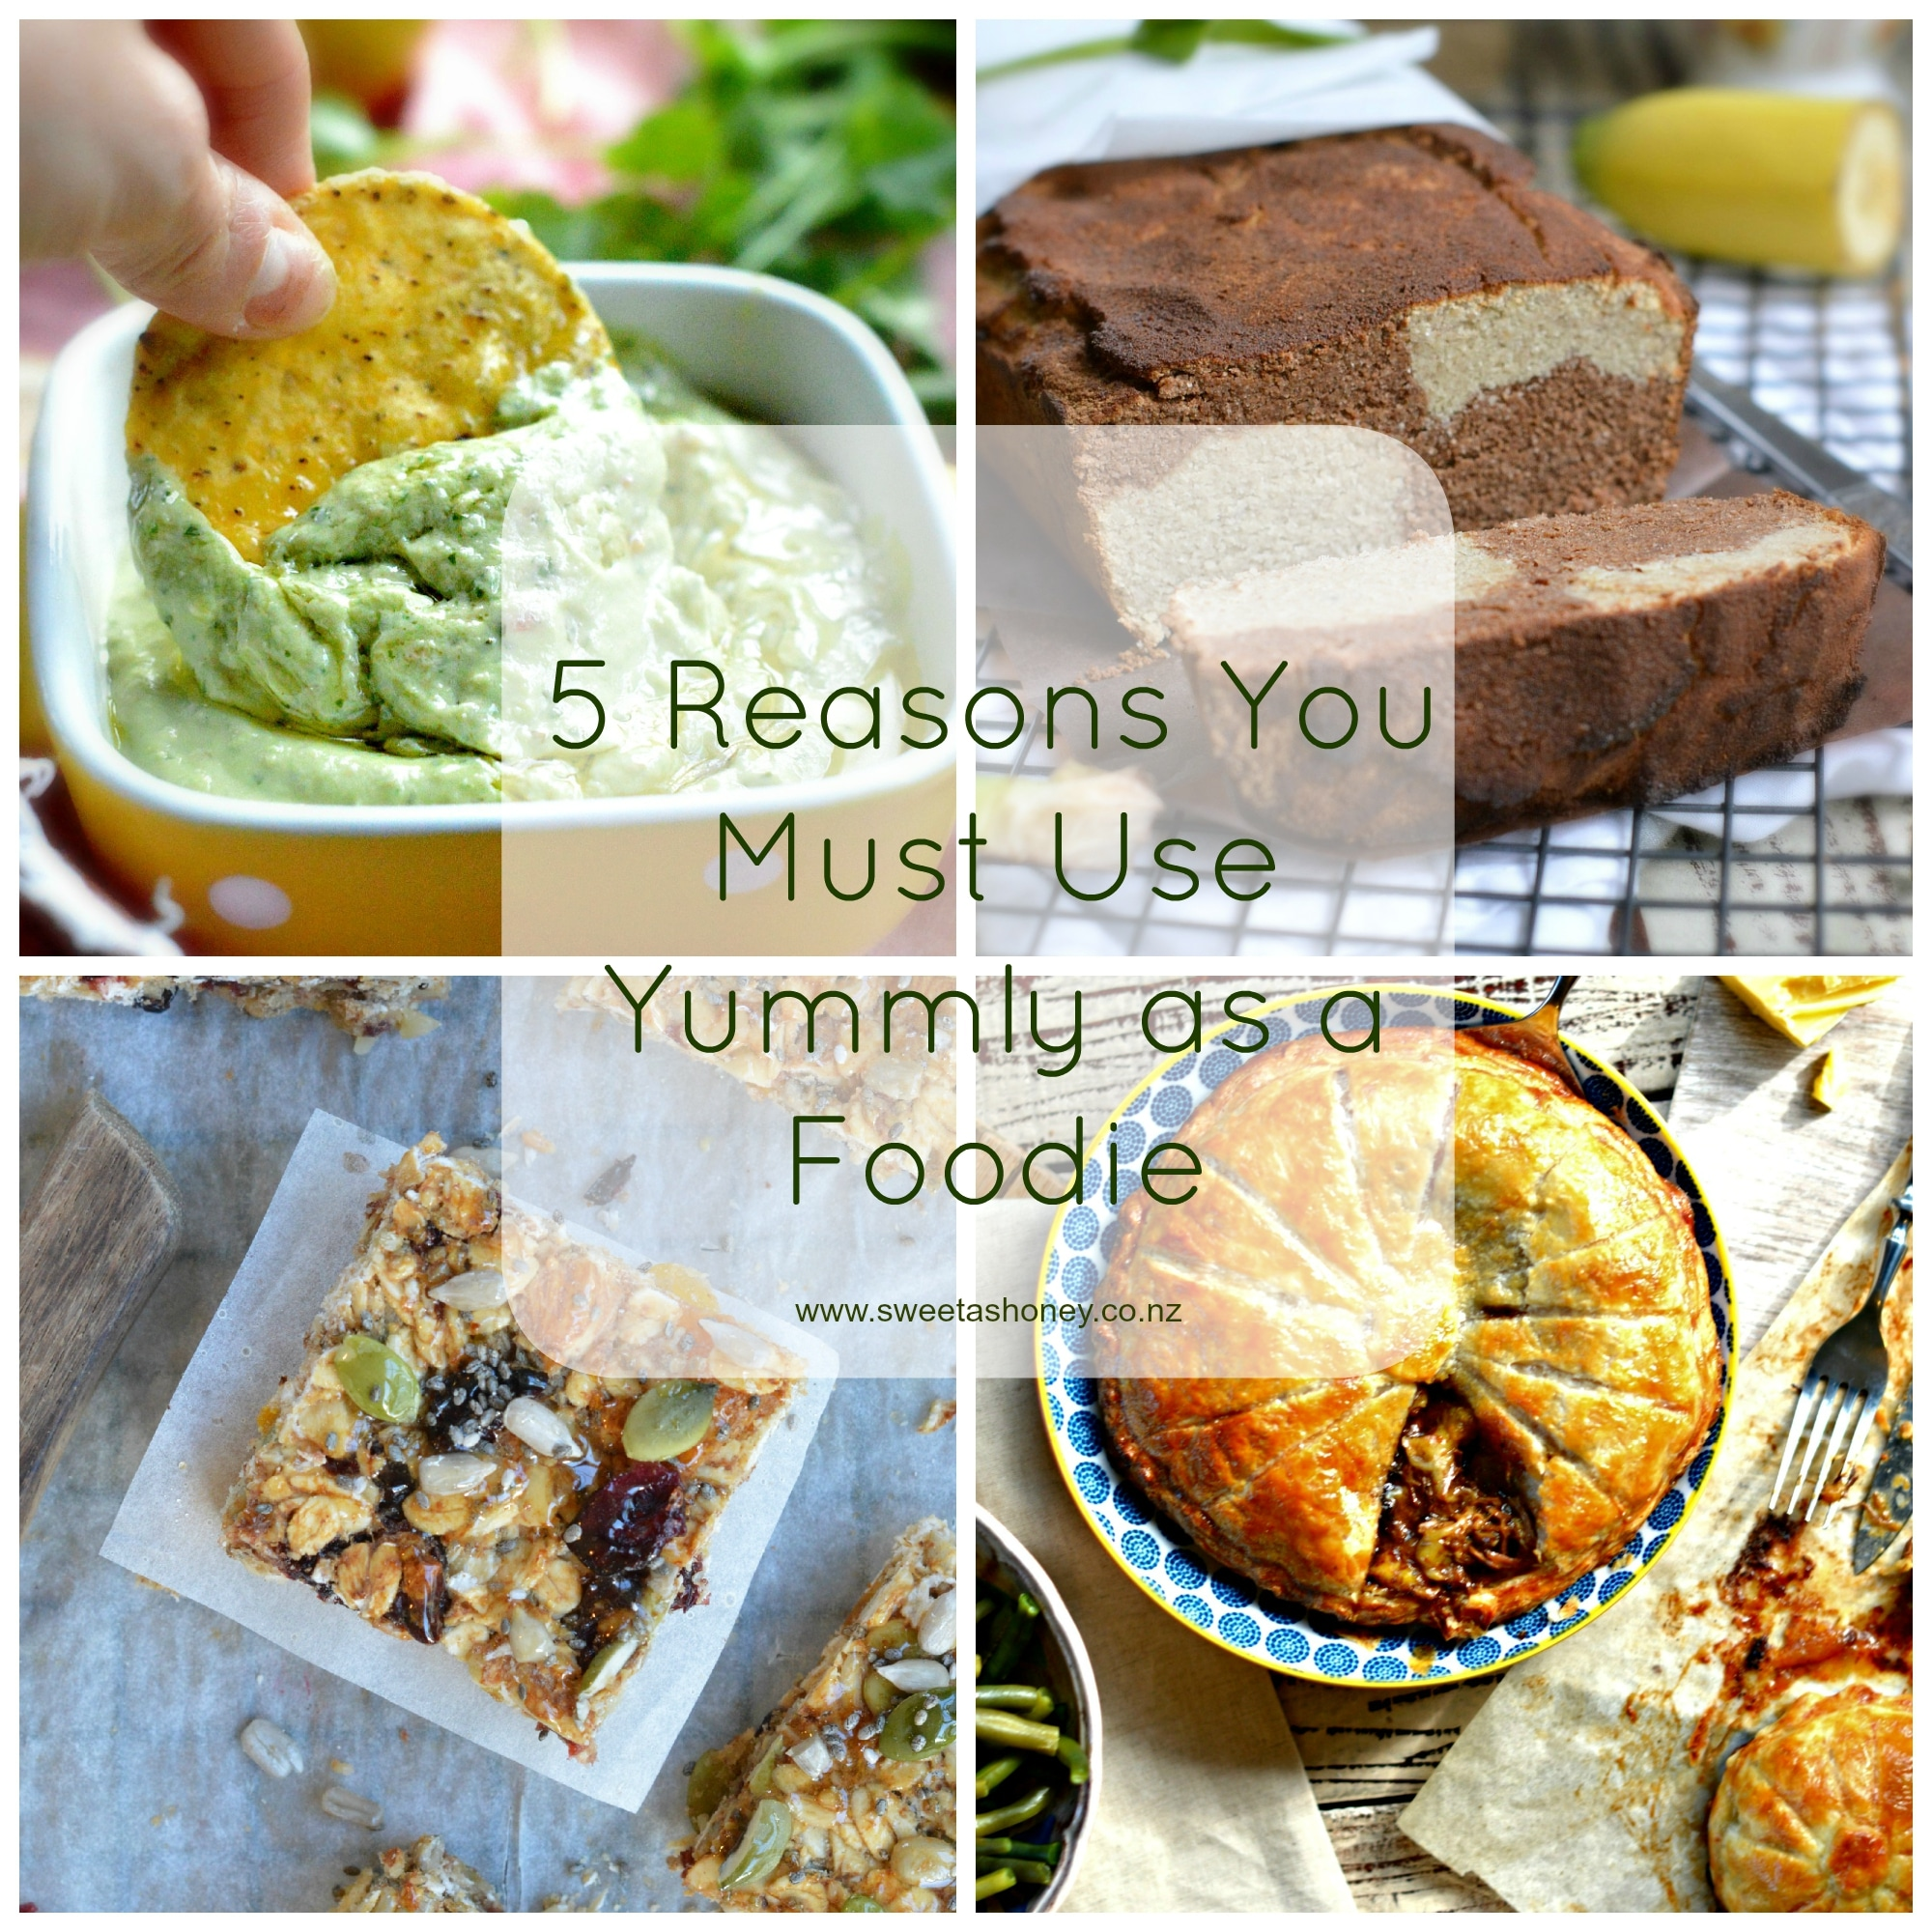 5 reasons you must use yummly